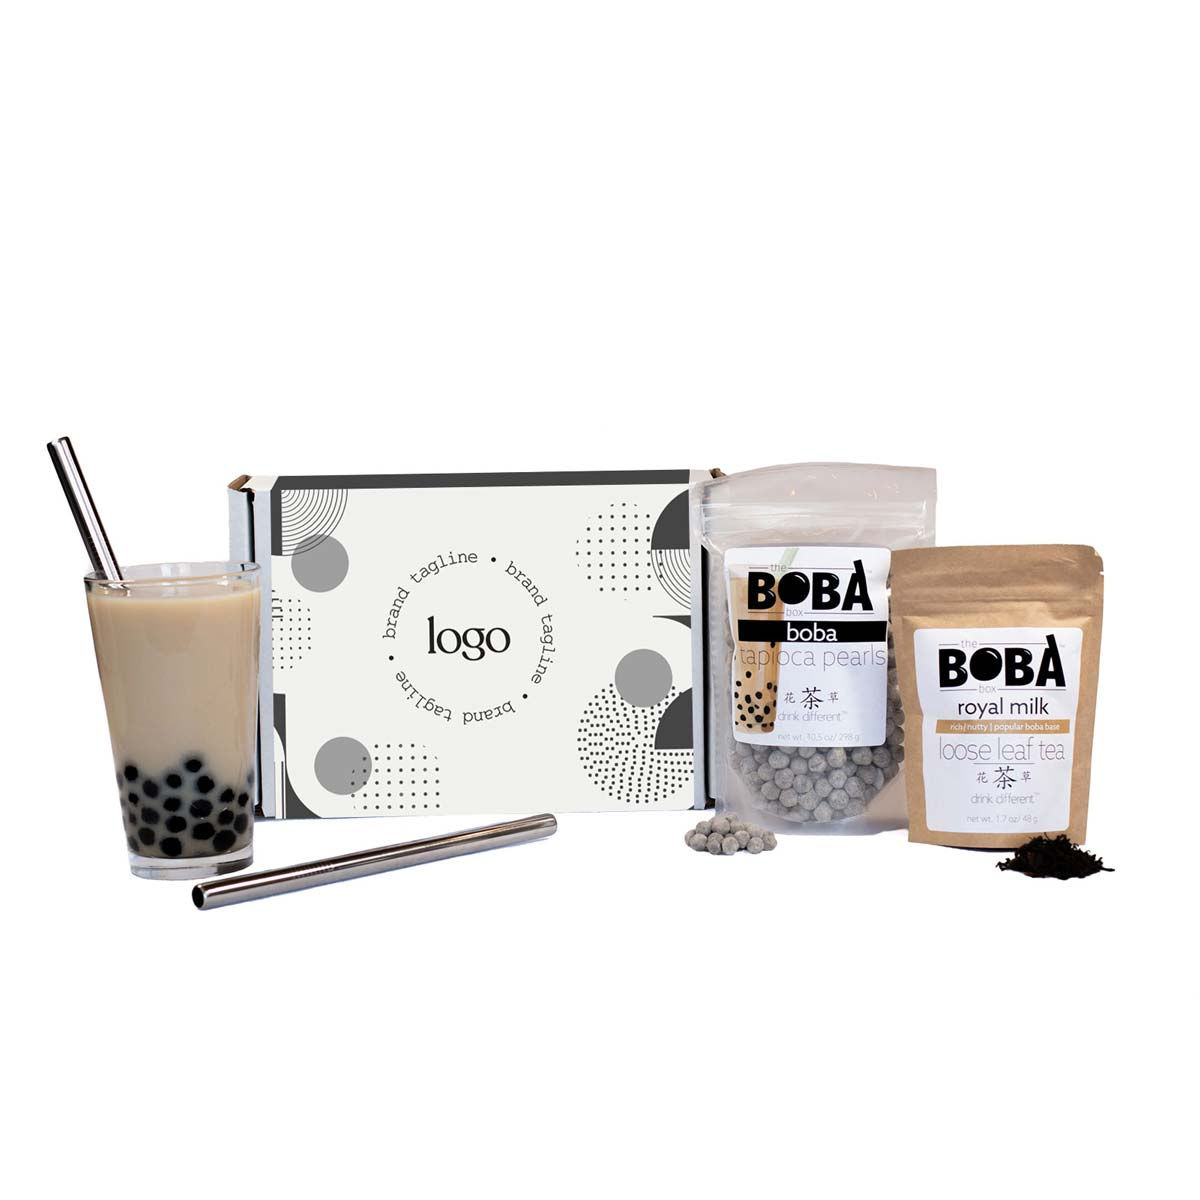 302255 bubble tea kit full color box sleeve